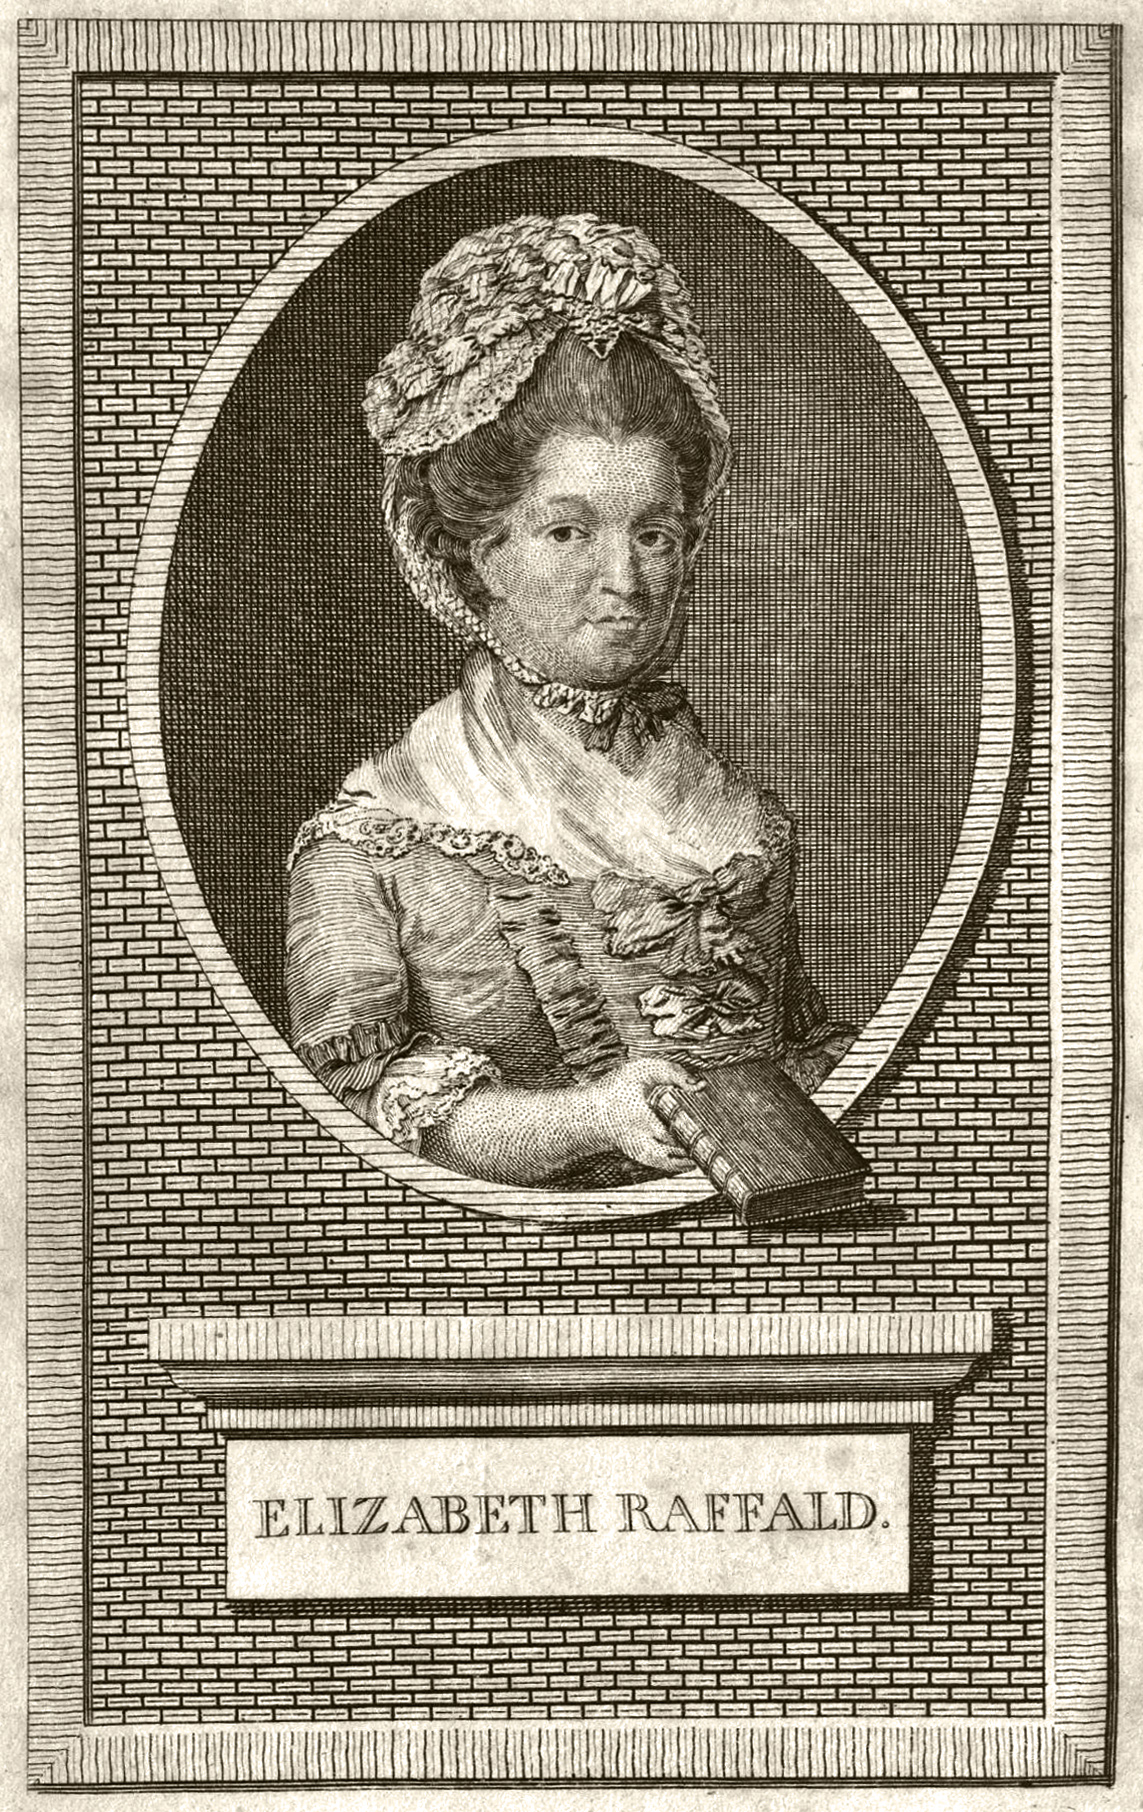 Engraving of Elizabeth Raffald, from the 1782 edition of her cookery book